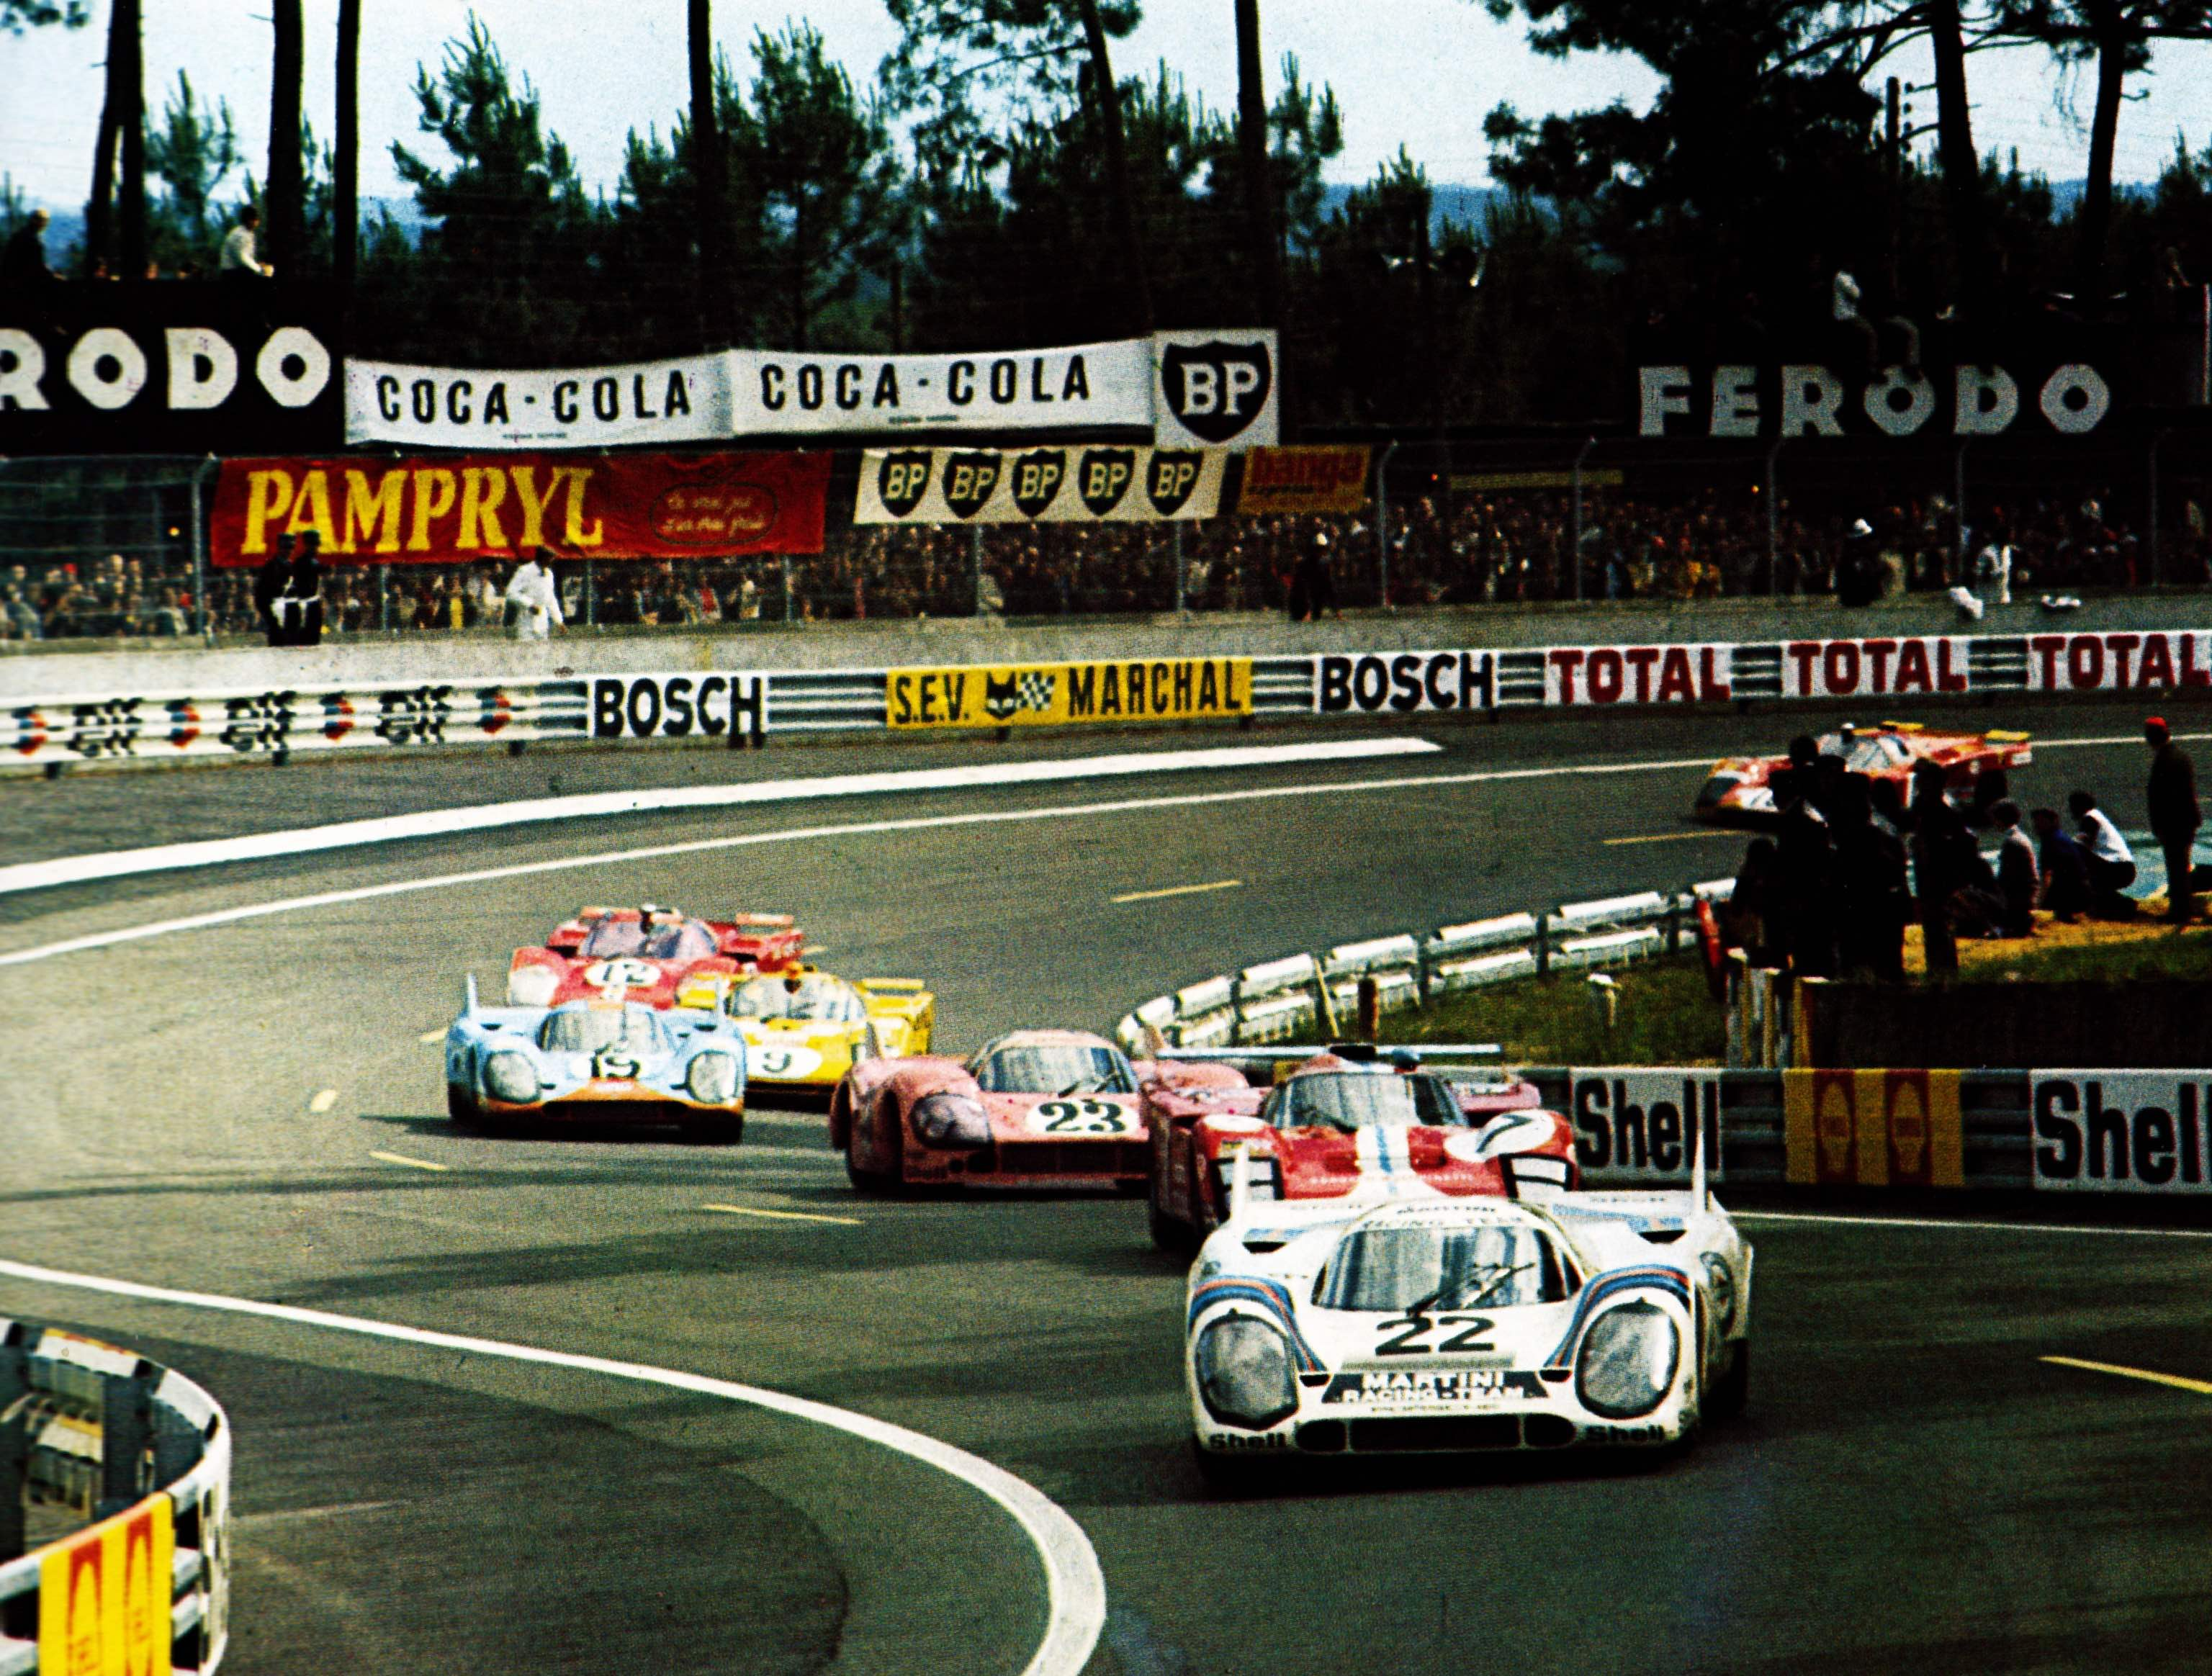 出典:https://carloscastella.files.wordpress.com/2014/03/1971-le-mans.jpg